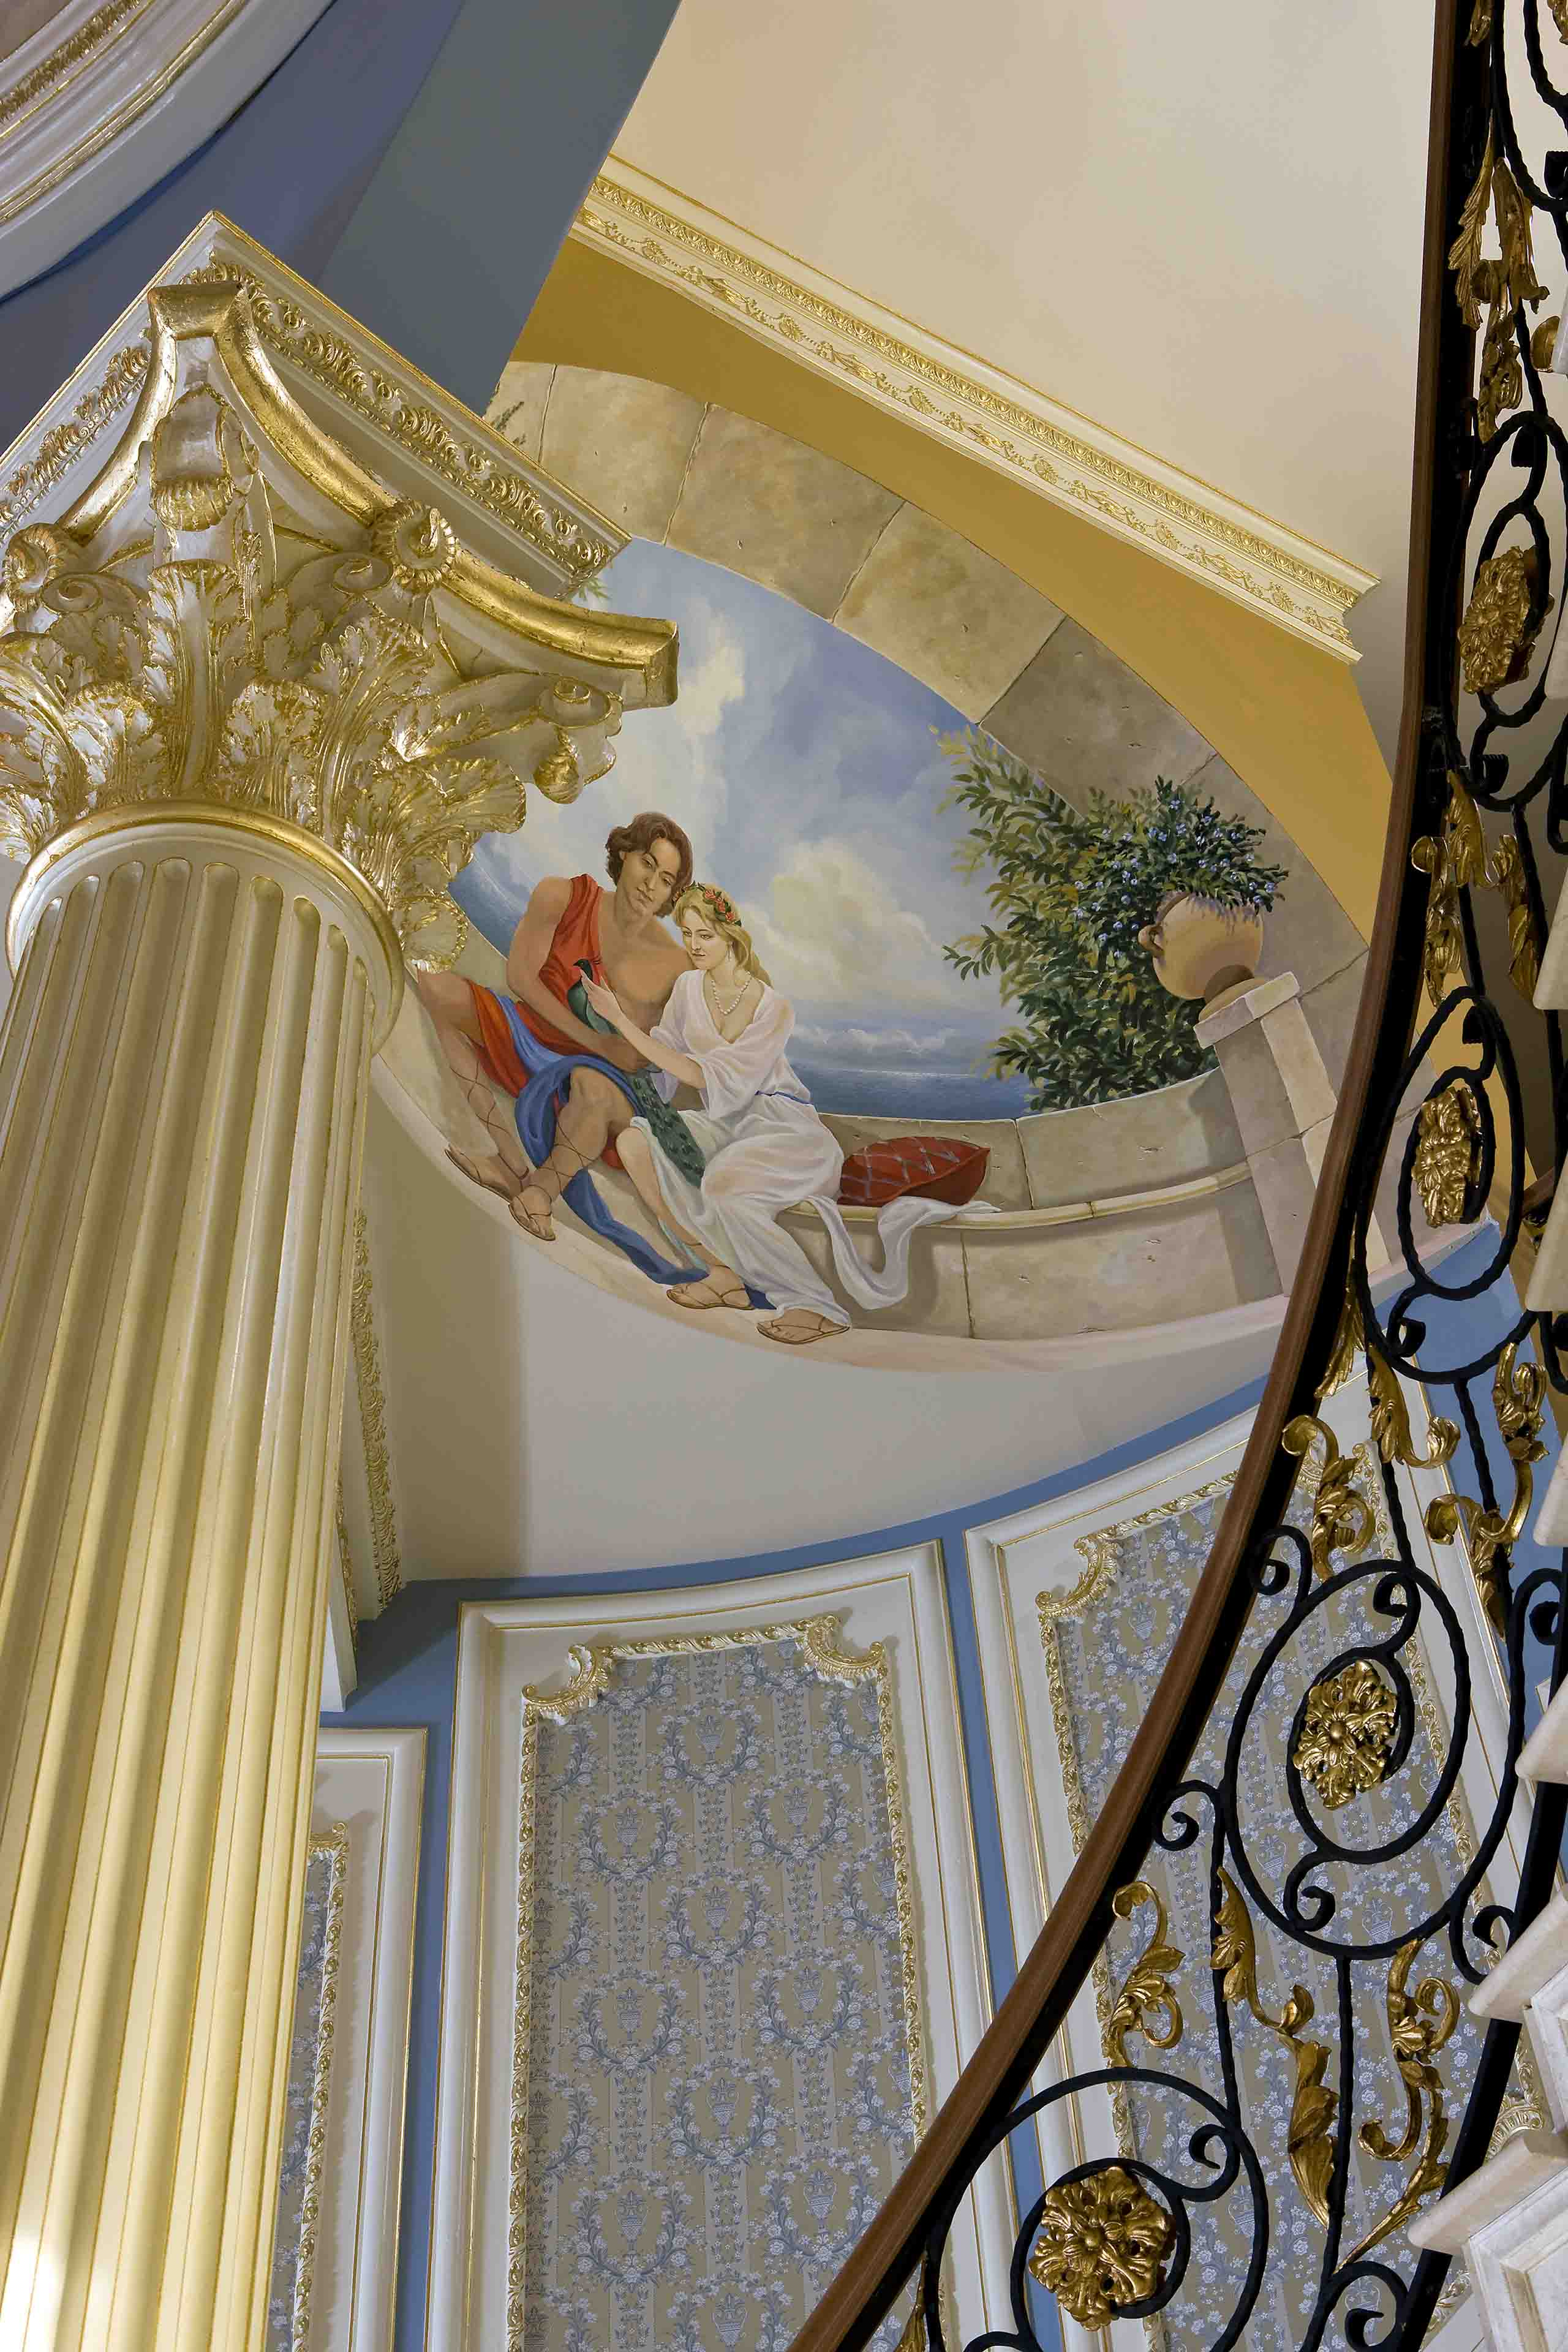 Mural painted in dome of mansion with gold and beige columns and blue and gold walls